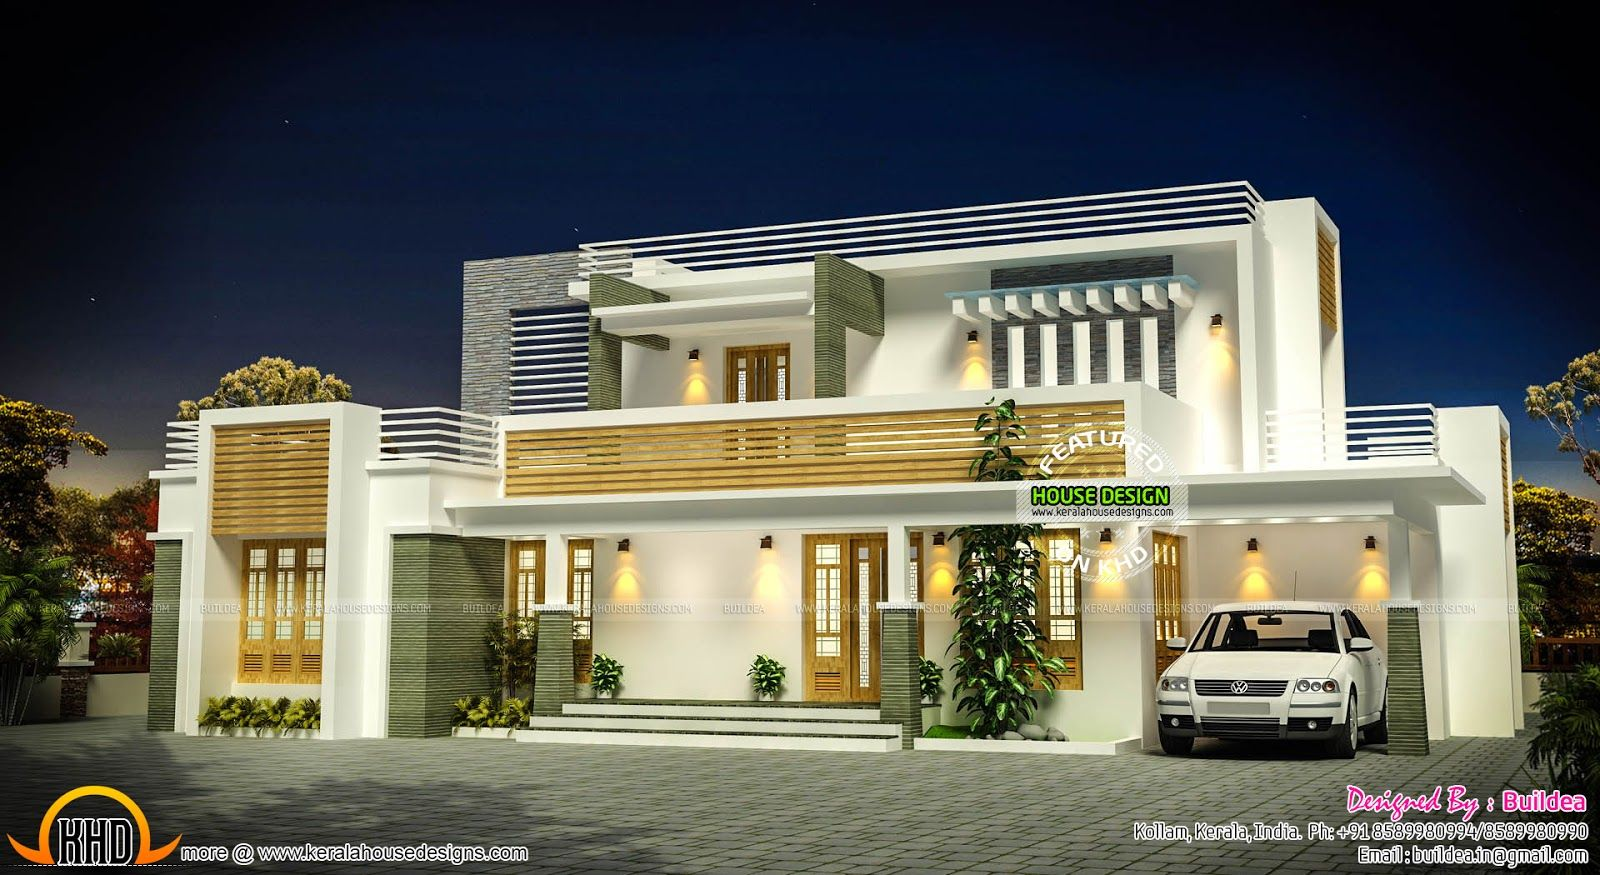 Beautiful 1885 Square Feet, 4 Bedroom Contemporary Model Flat Roof House Design  Provided By Buildea, Kollam, Kerala.